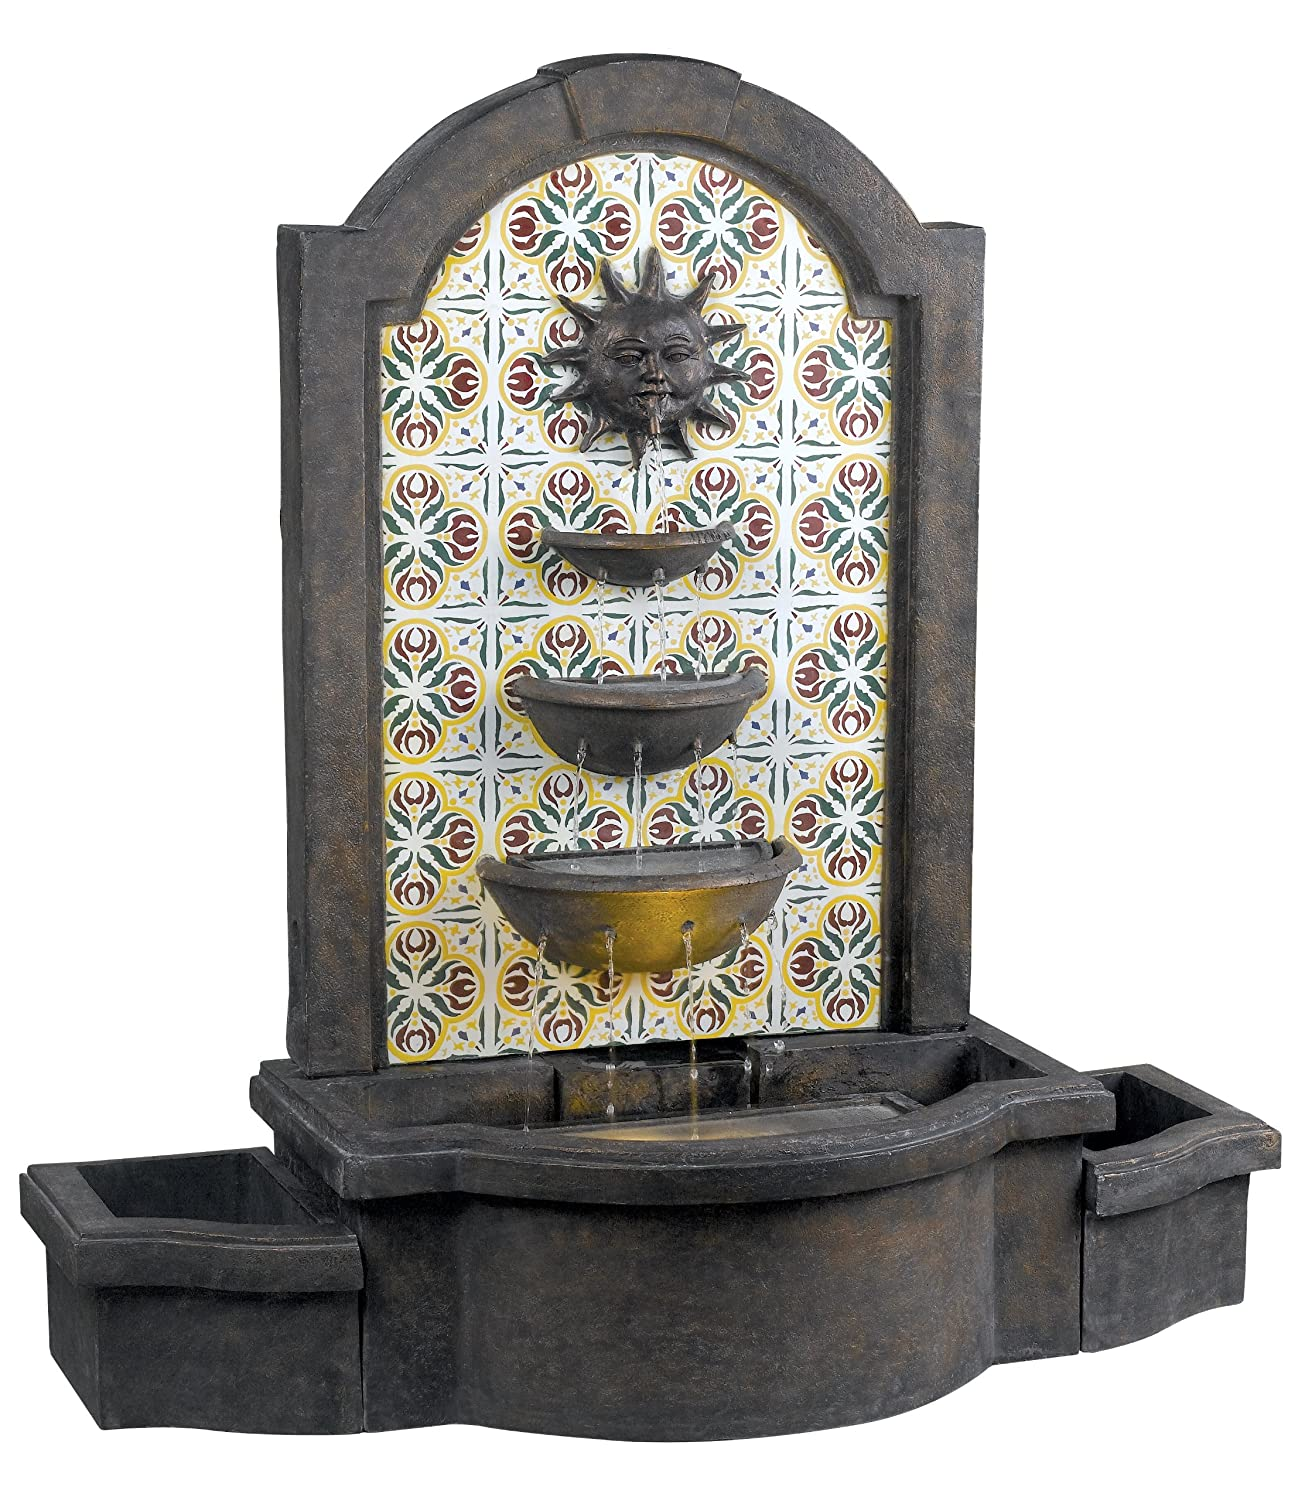 Amazon.com: Kenroy Home #50721MD Cascada Indoor/Outdoor Floor Fountain In  Madrid Finish With Patterned Tile Motif: Home U0026 Kitchen